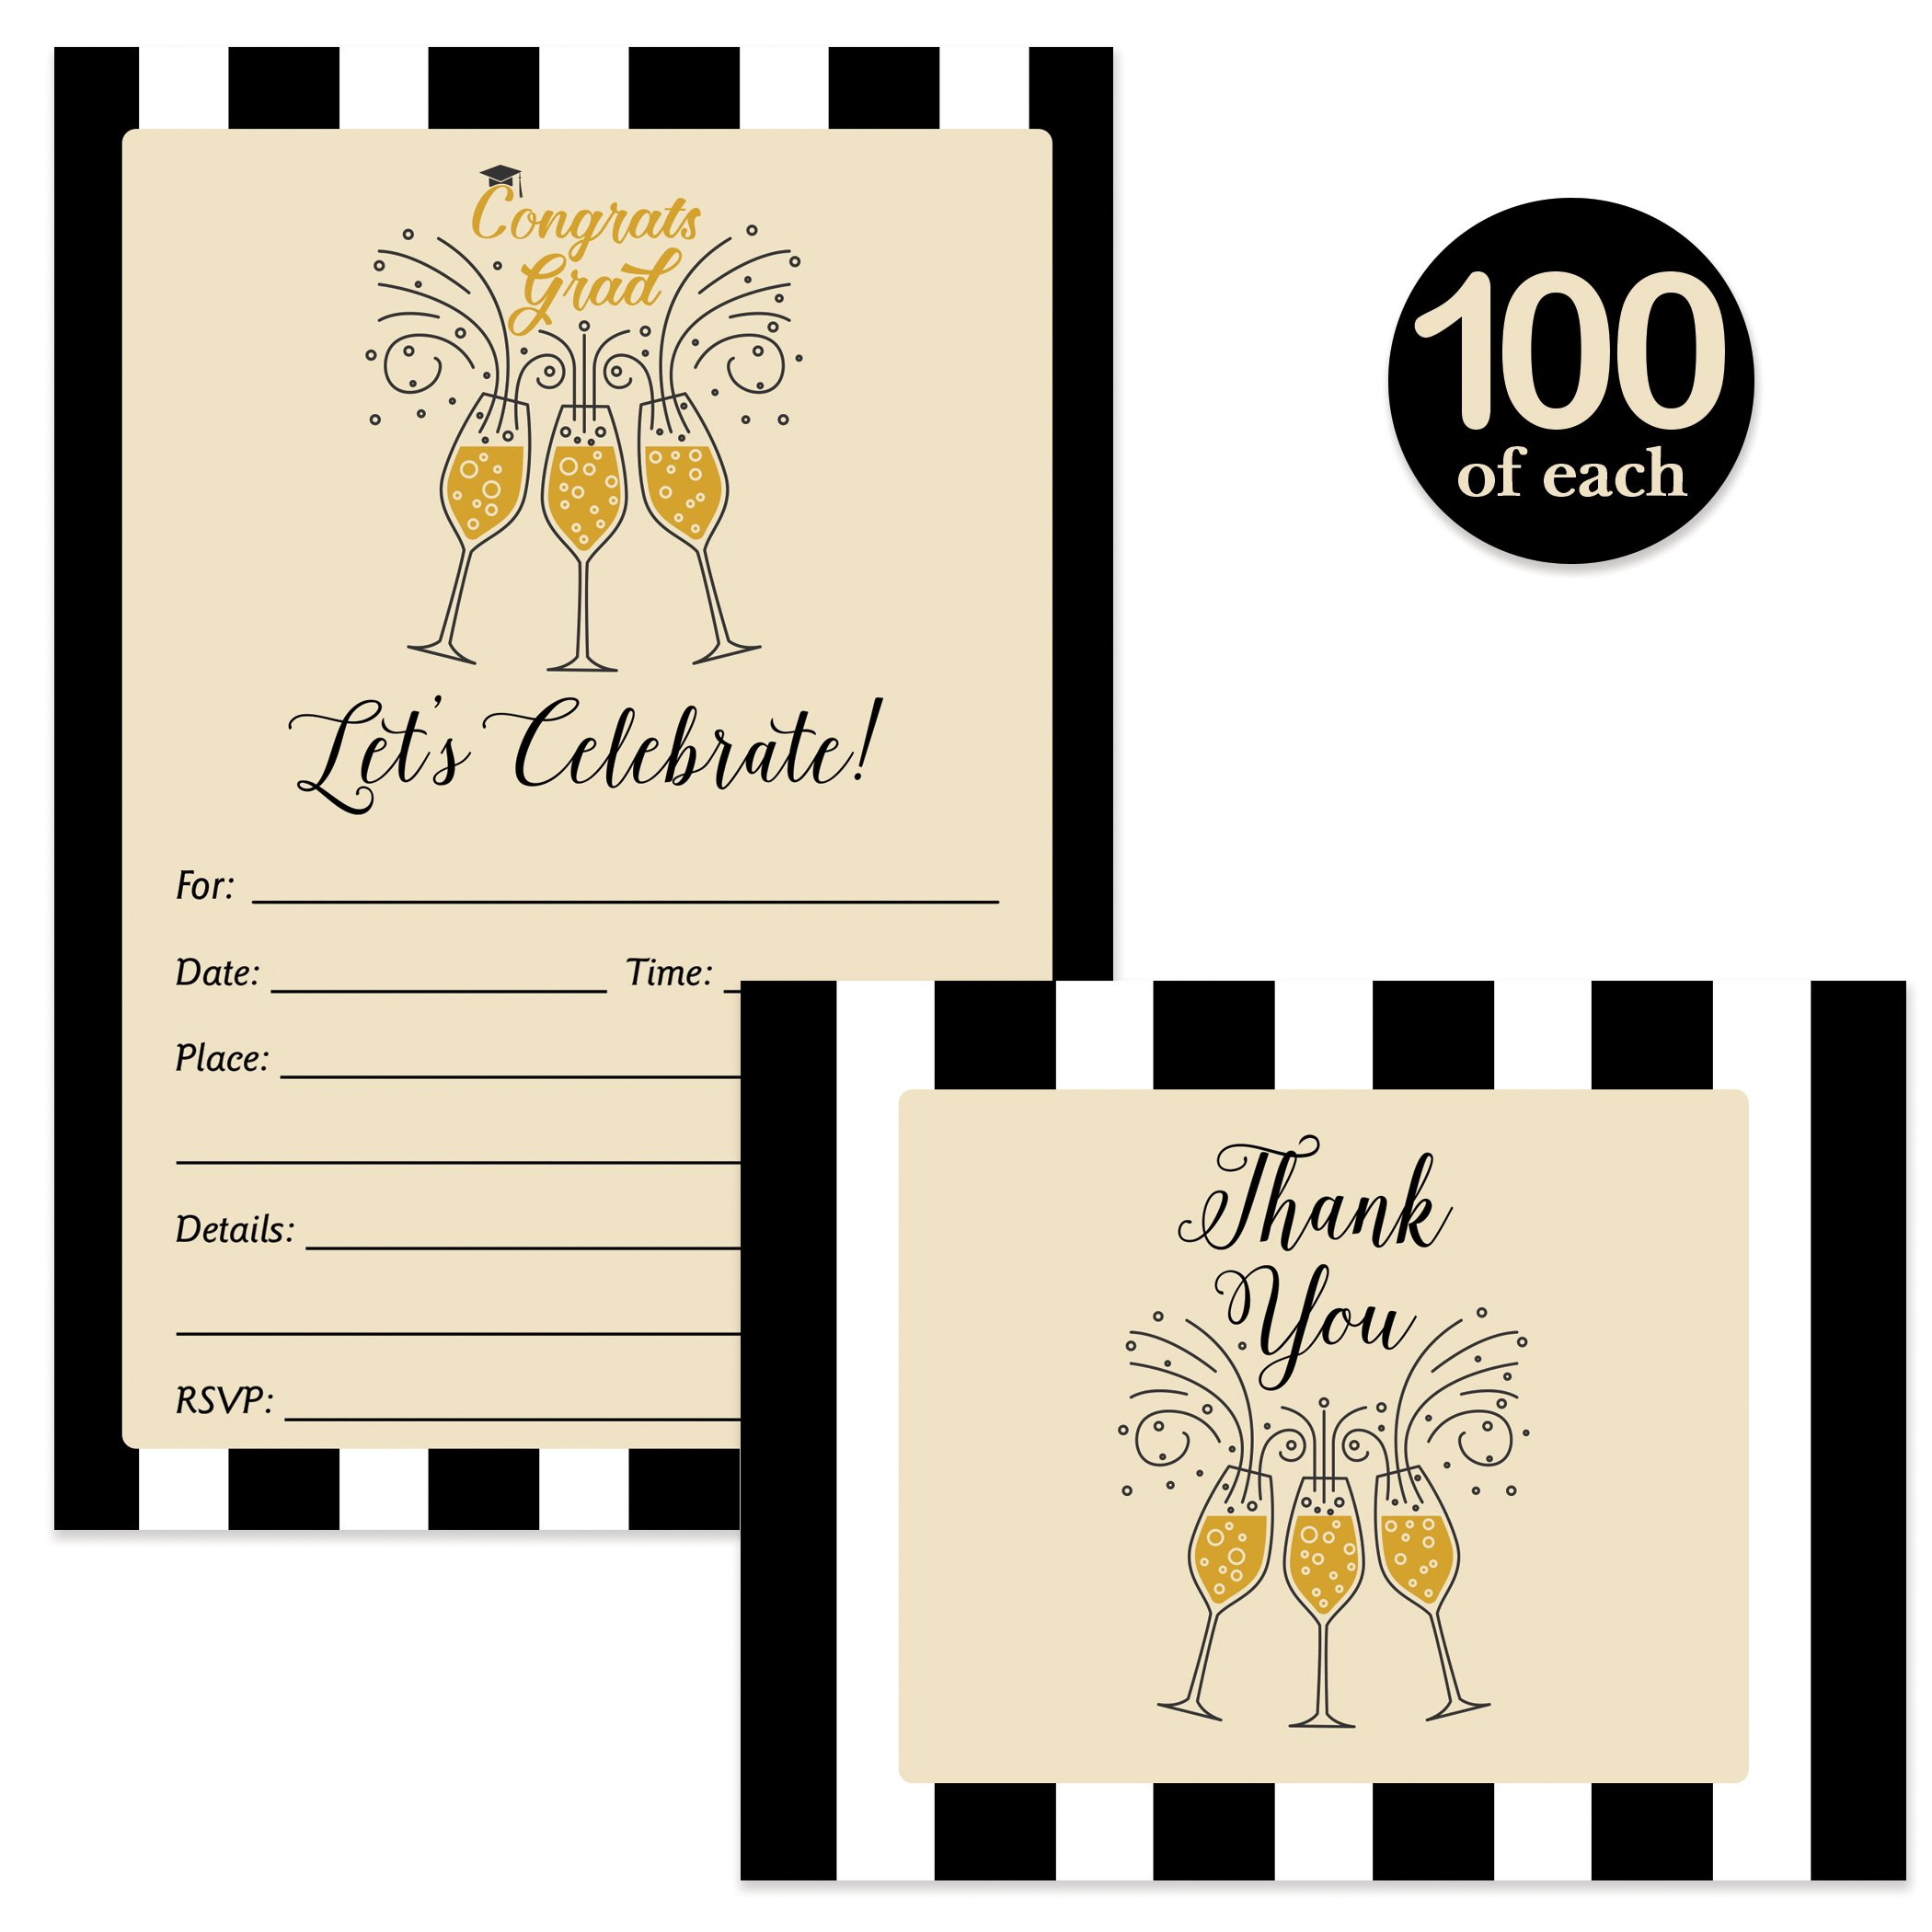 Graduation Invitations and Thank You Notes ( 100 of Each ) with Envelopes Champagne Bubbly Matching Set Folded Blank Thank You Cards Fill-In Party Invites College High School Grad Excellent Value Pair by Digibuddha